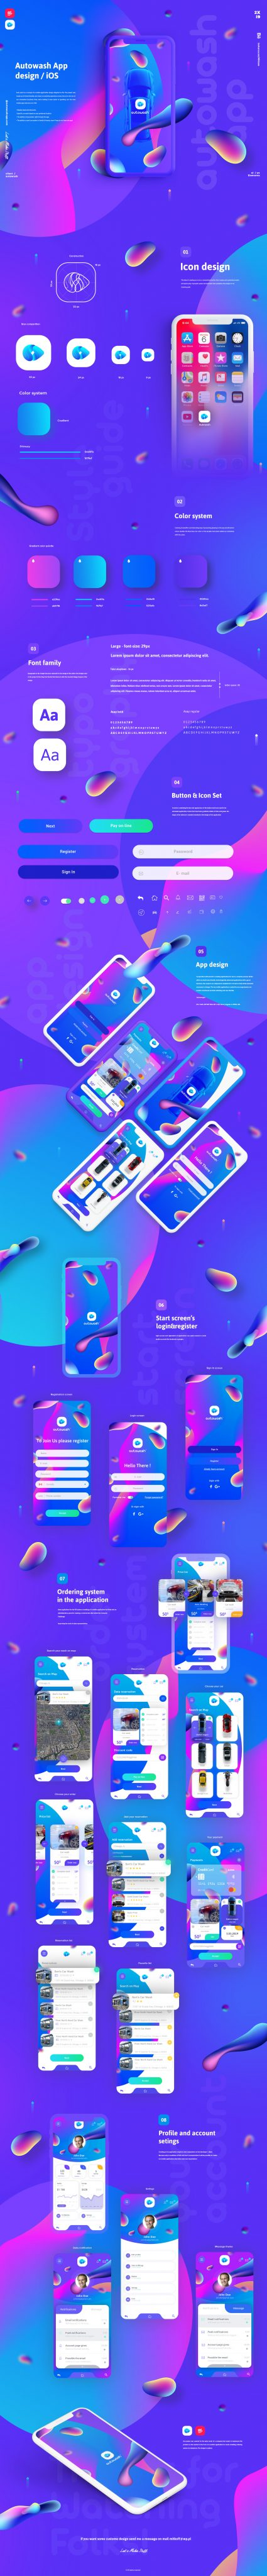 Autowash iOS app design / UI UX elements by Mariusz Mitkow